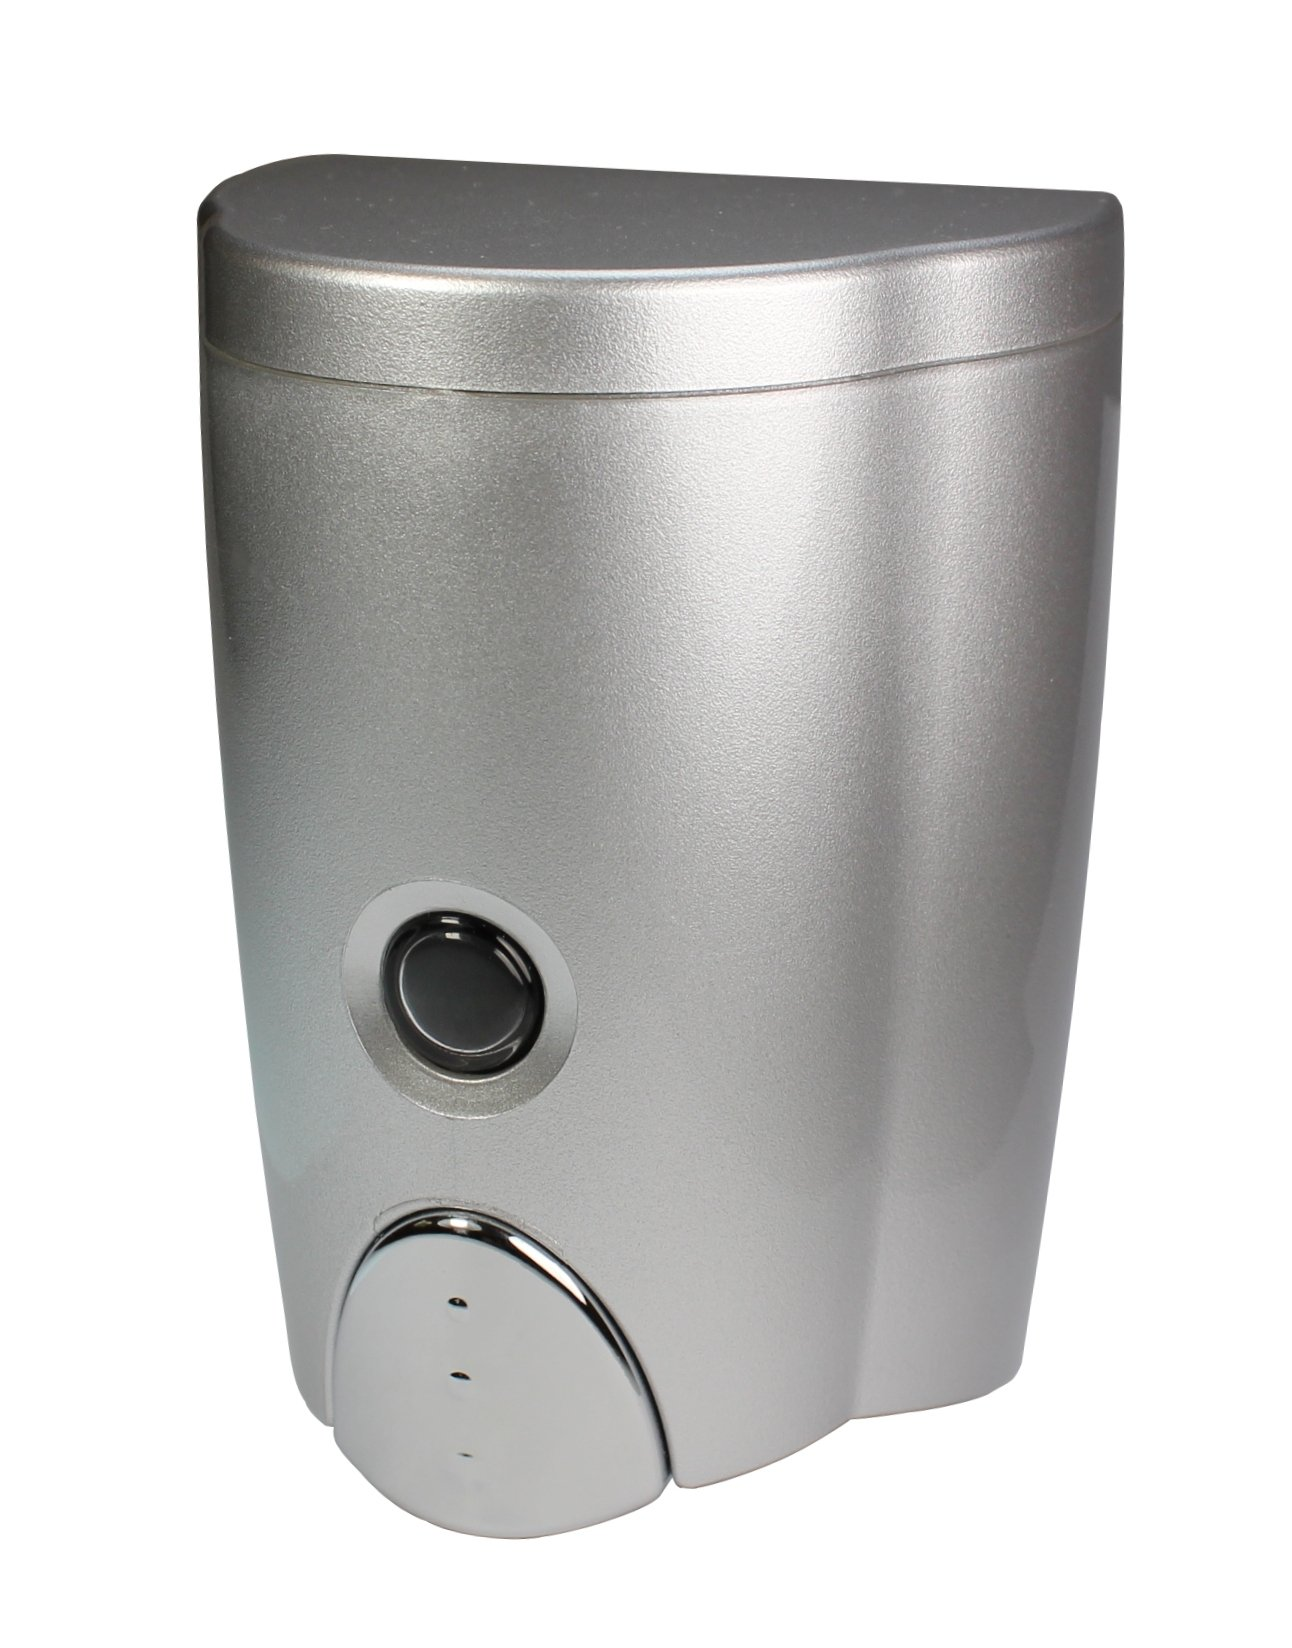 HOMEPLUZ Simply Silver Wall-Mount Soap Dispenser (19.6 oz / 580 ml) by HOMEPLUZ